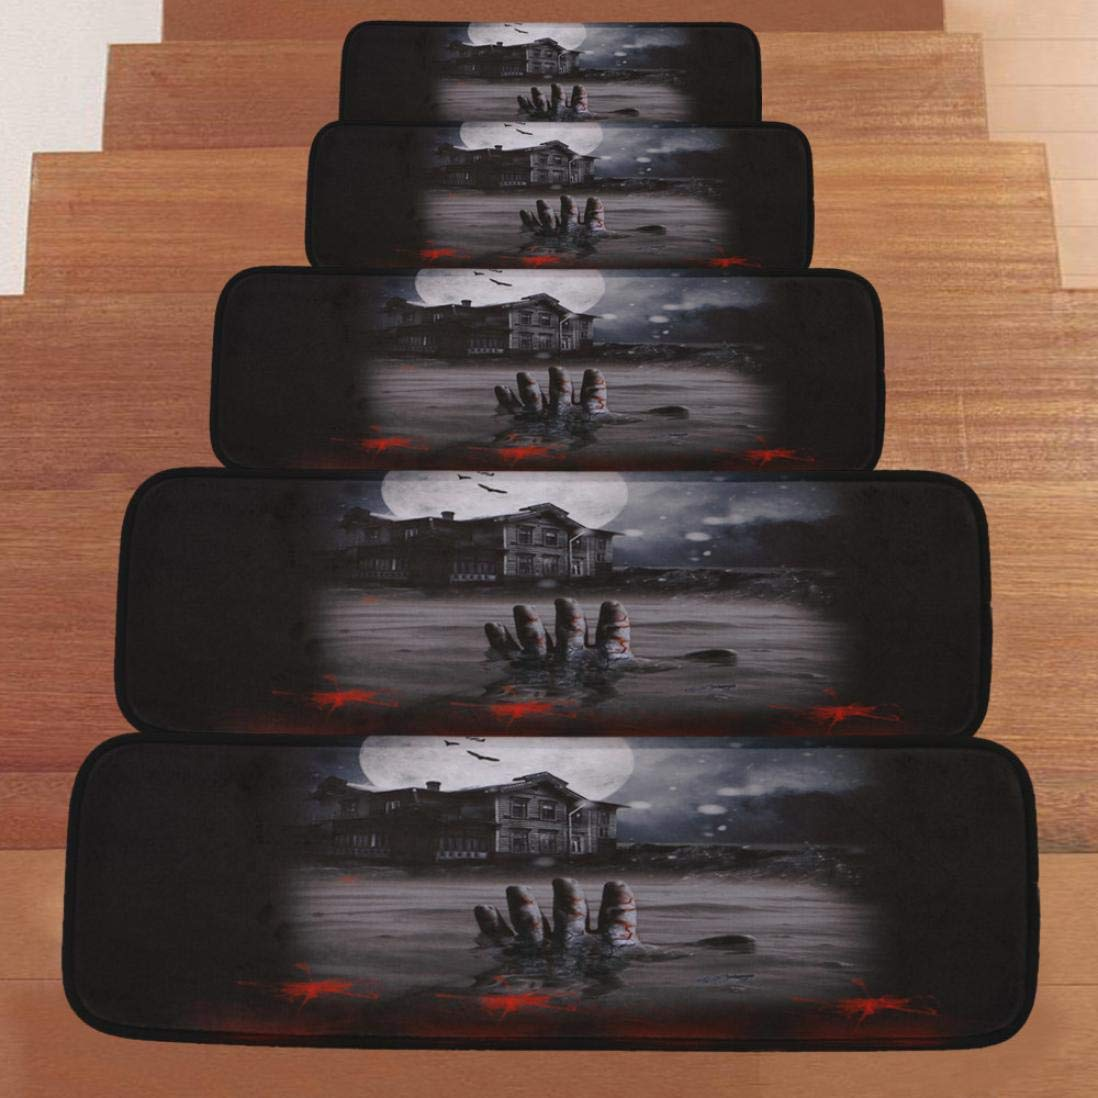 "certainPL Halloween Stair Mats, Non-Slip Indoor Stair Treads Protectors, Set of 5 Modern Step Mats for Hard Floor Staircase, 8.6"" x 27.5"" (A) 8.6"" x 27.5"" (A)"